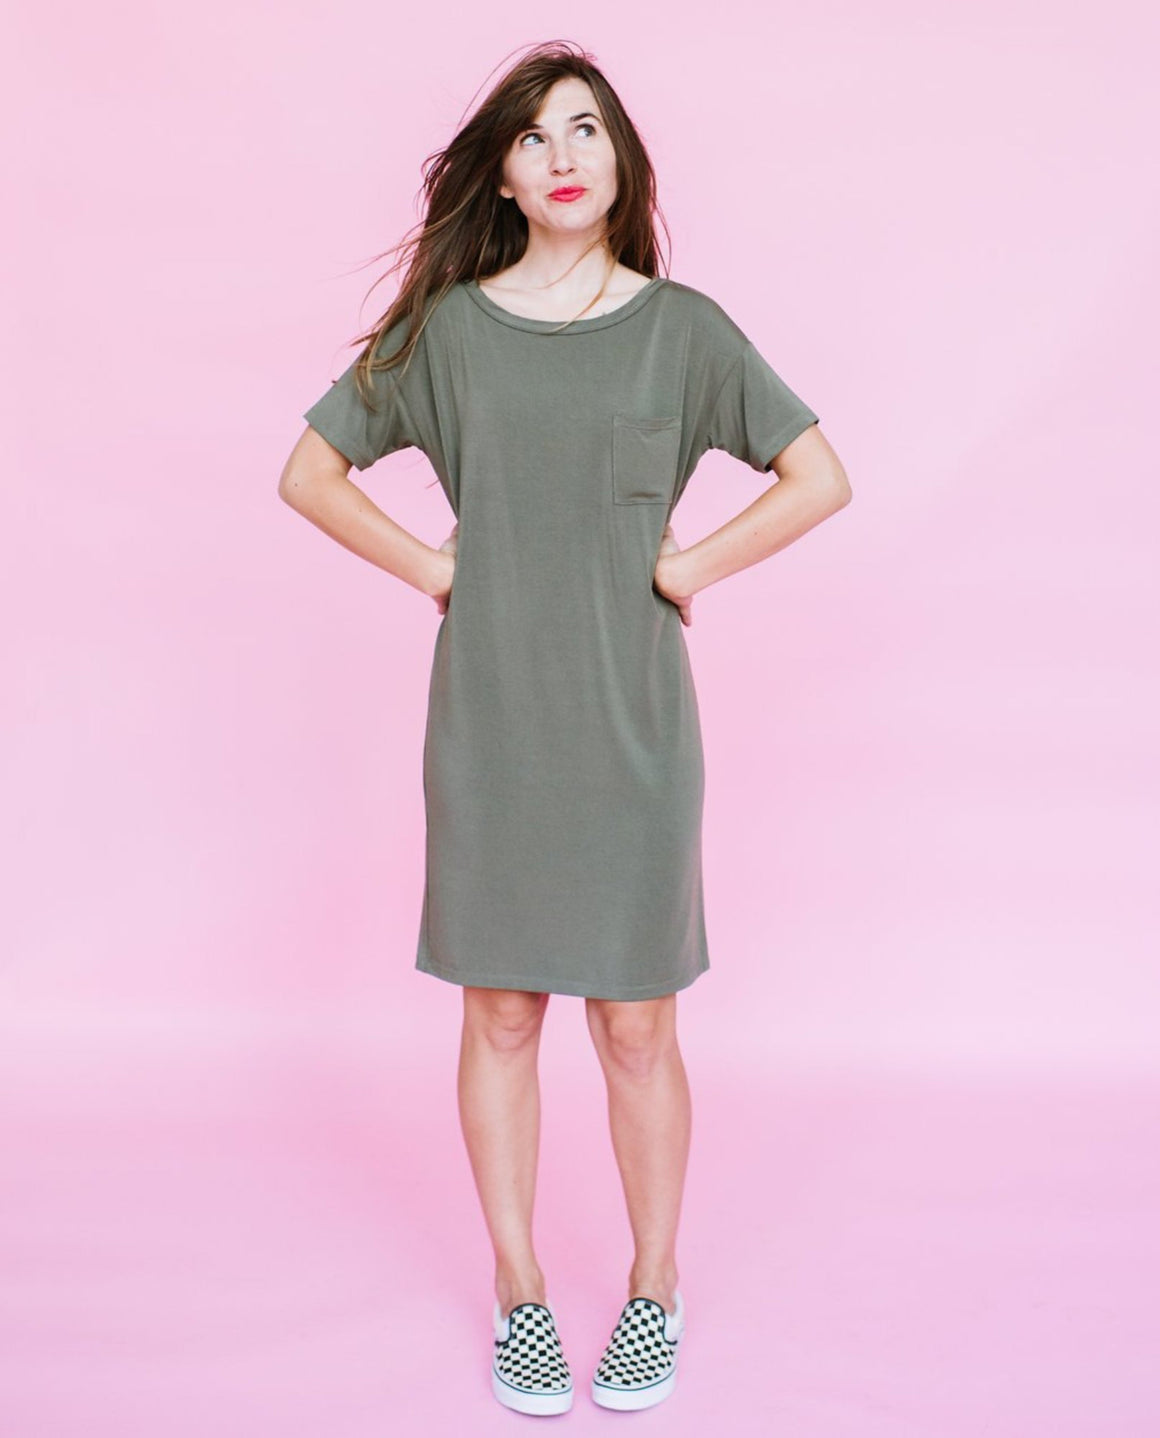 Sonnet James - SCOUT - MOSS - Dress